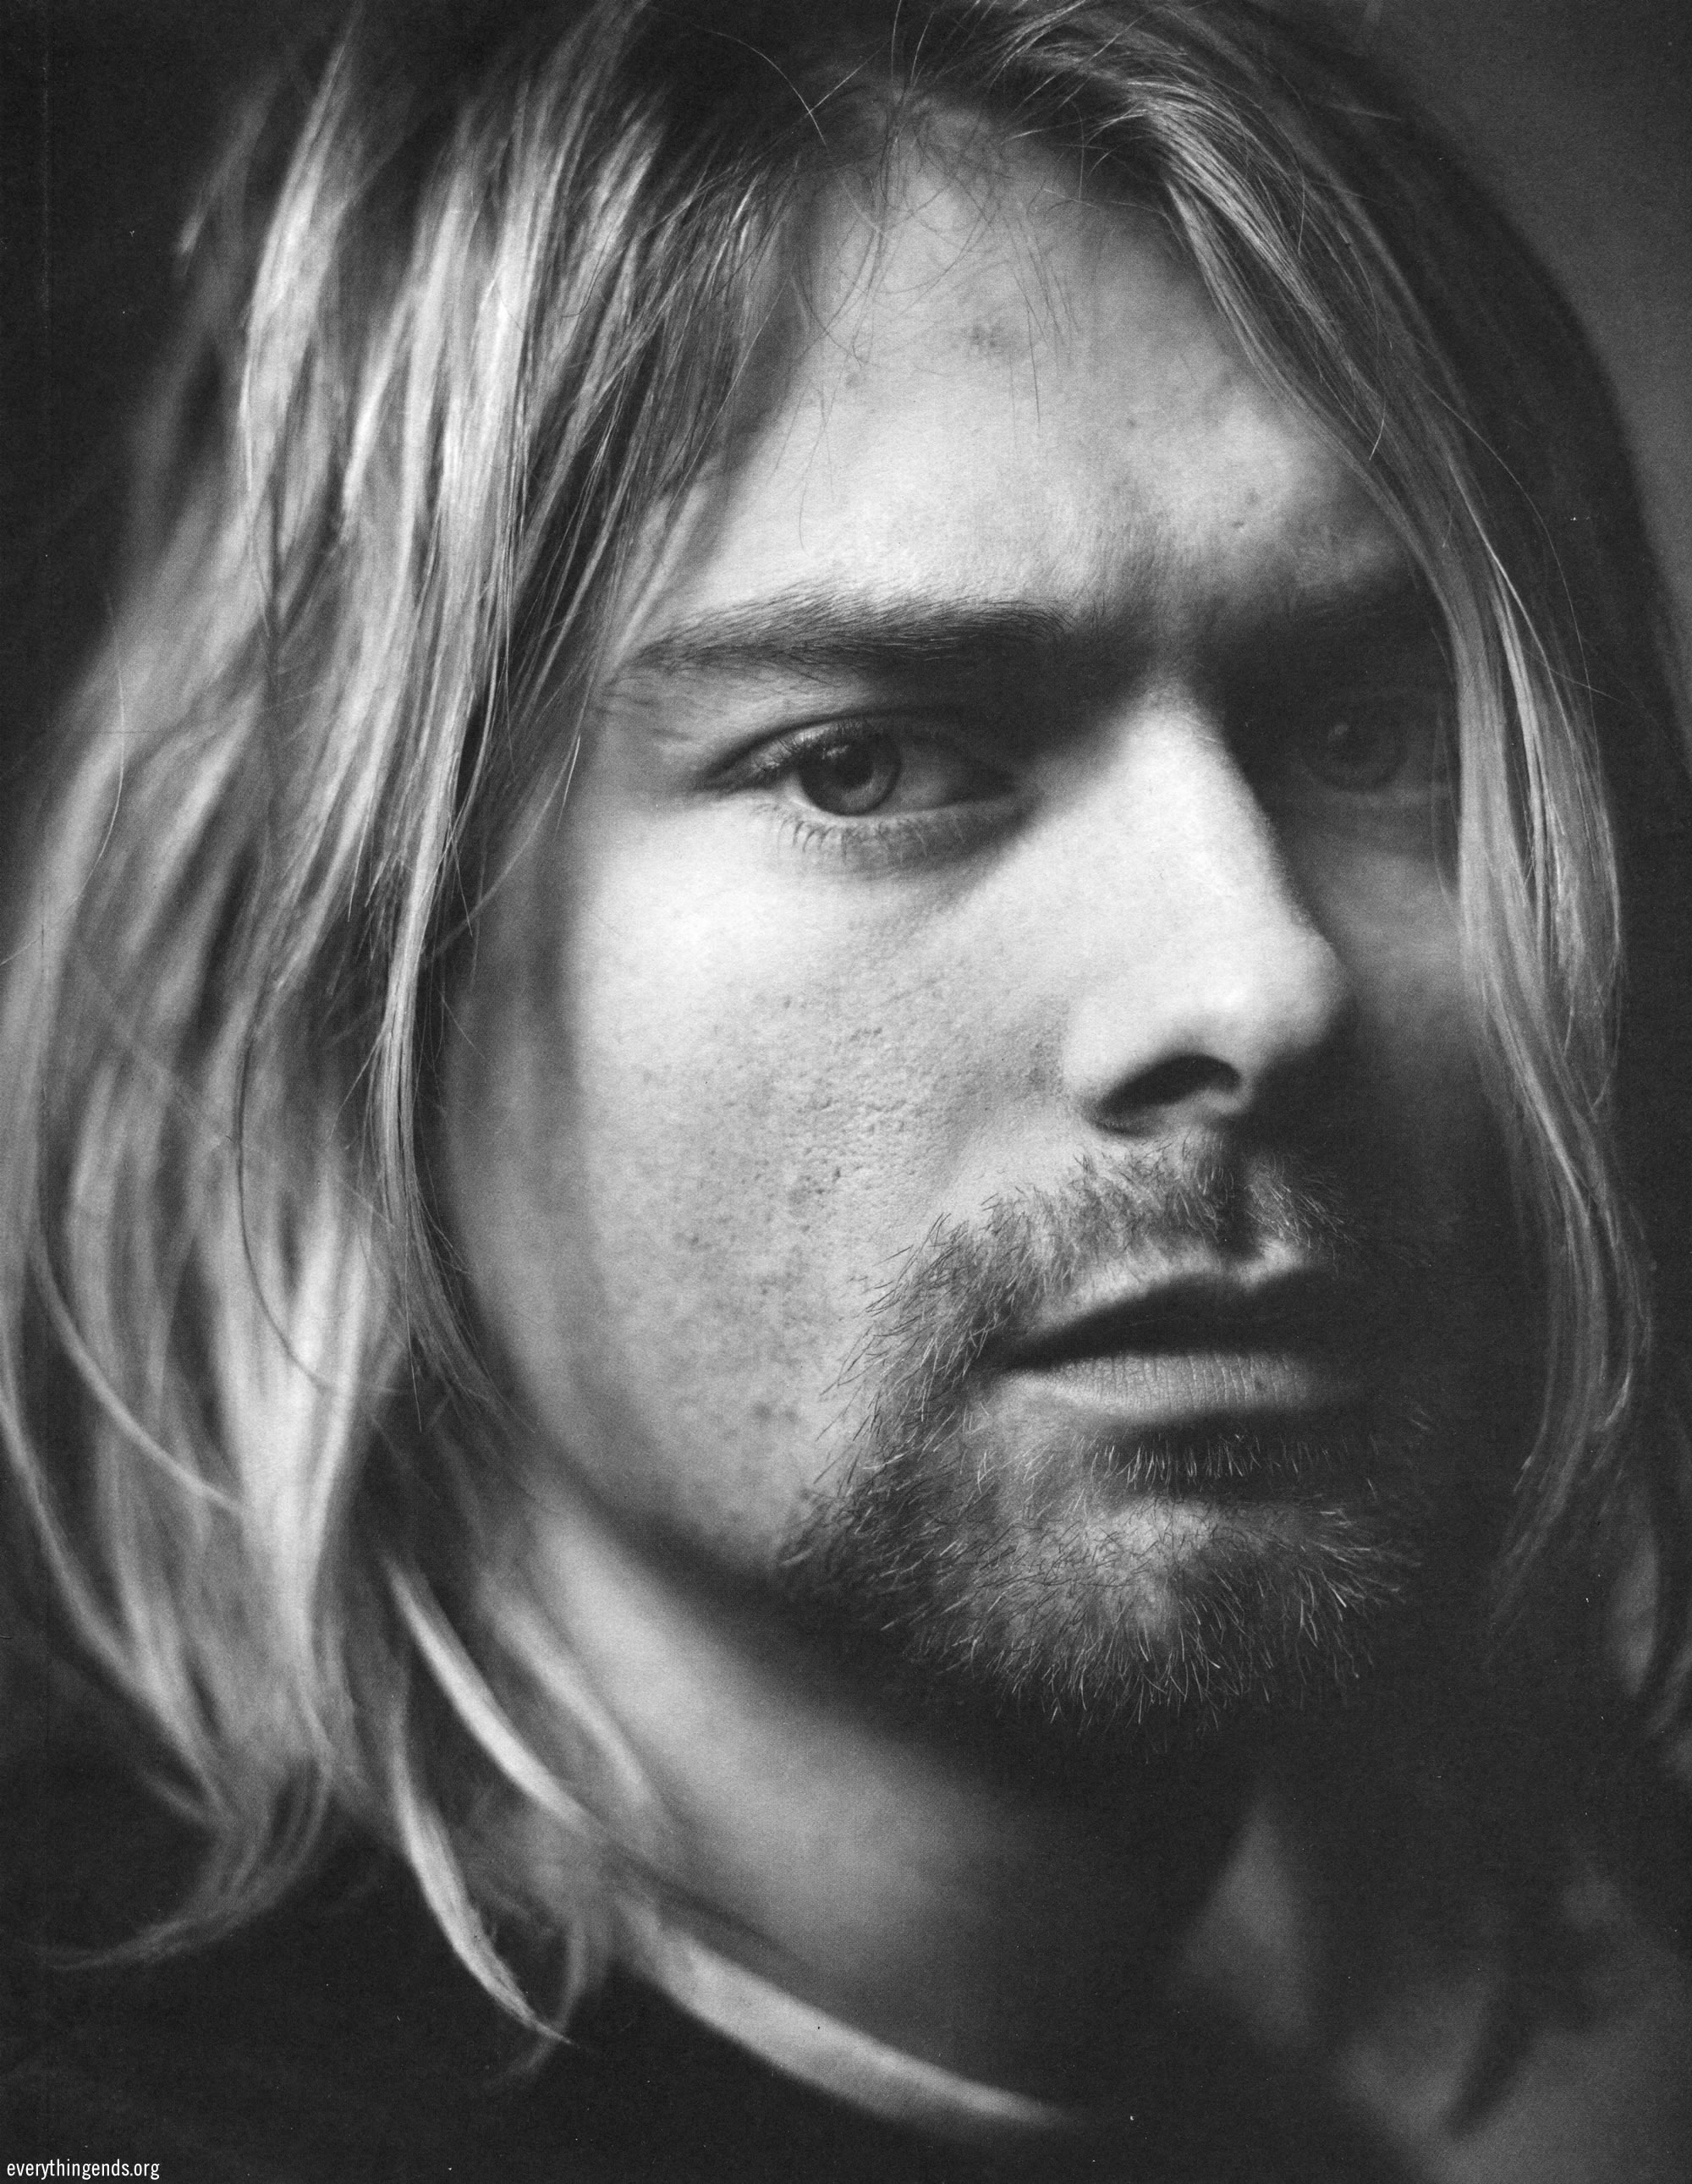 kurt cobain I wrote a biography about kurt cobain in 2006 since then, i've come to the  realization that it's better to let his legacy lie because i believe he.